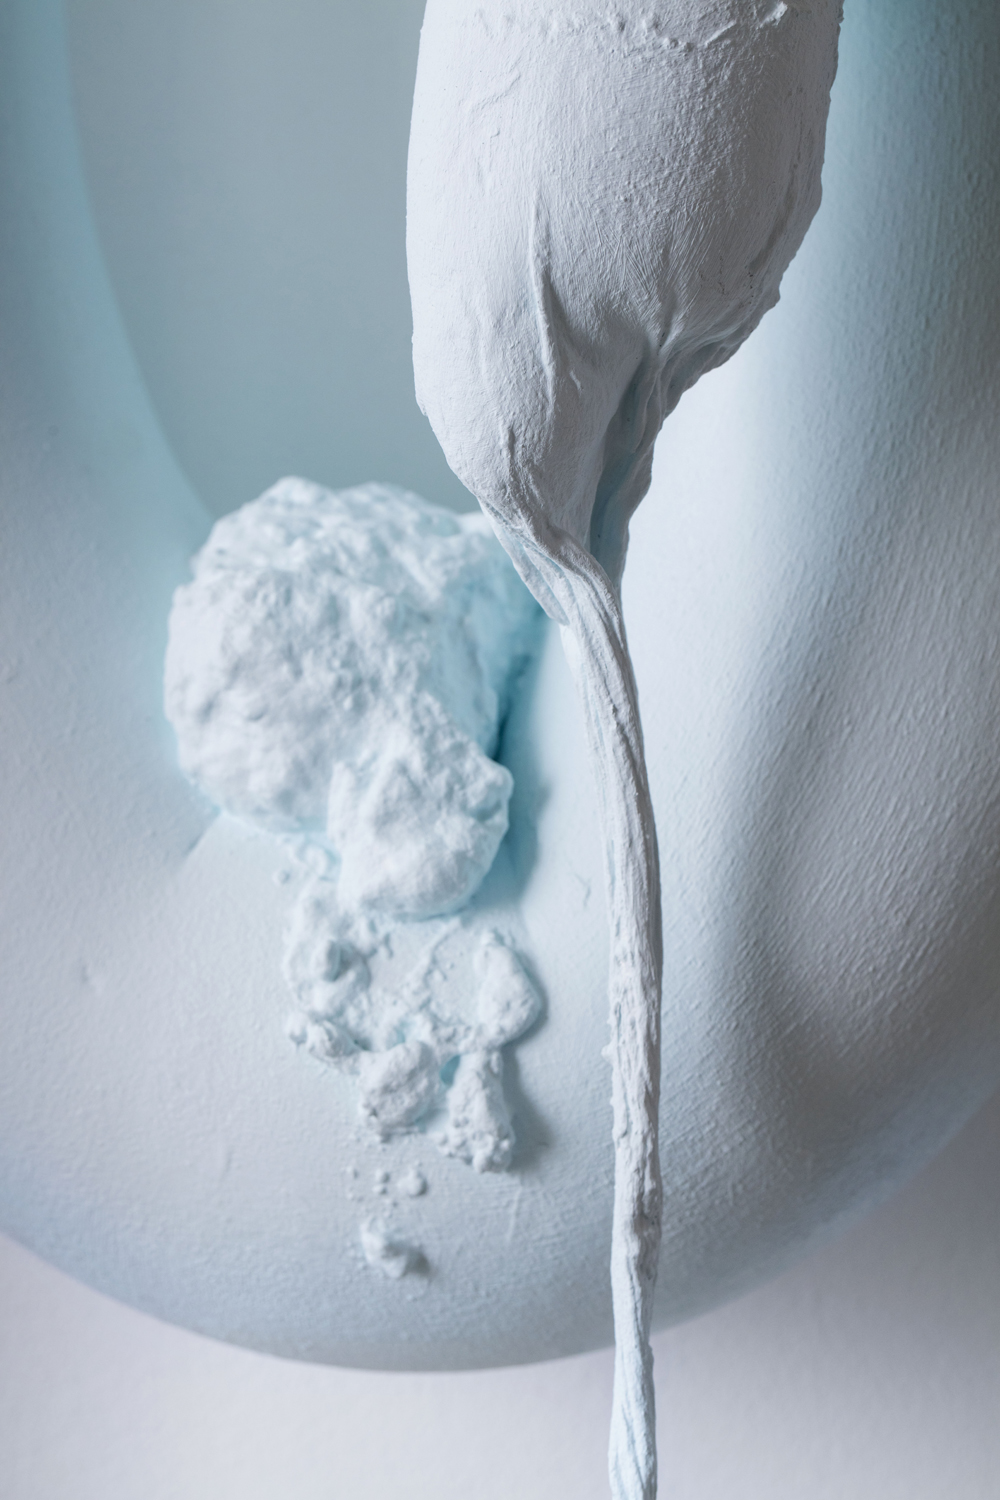 Jayne Dyer,  Sharpness 3 , 2016, polystyrene, plaster, cloth, acrylic, and LED, 70 x 35 x 25cm